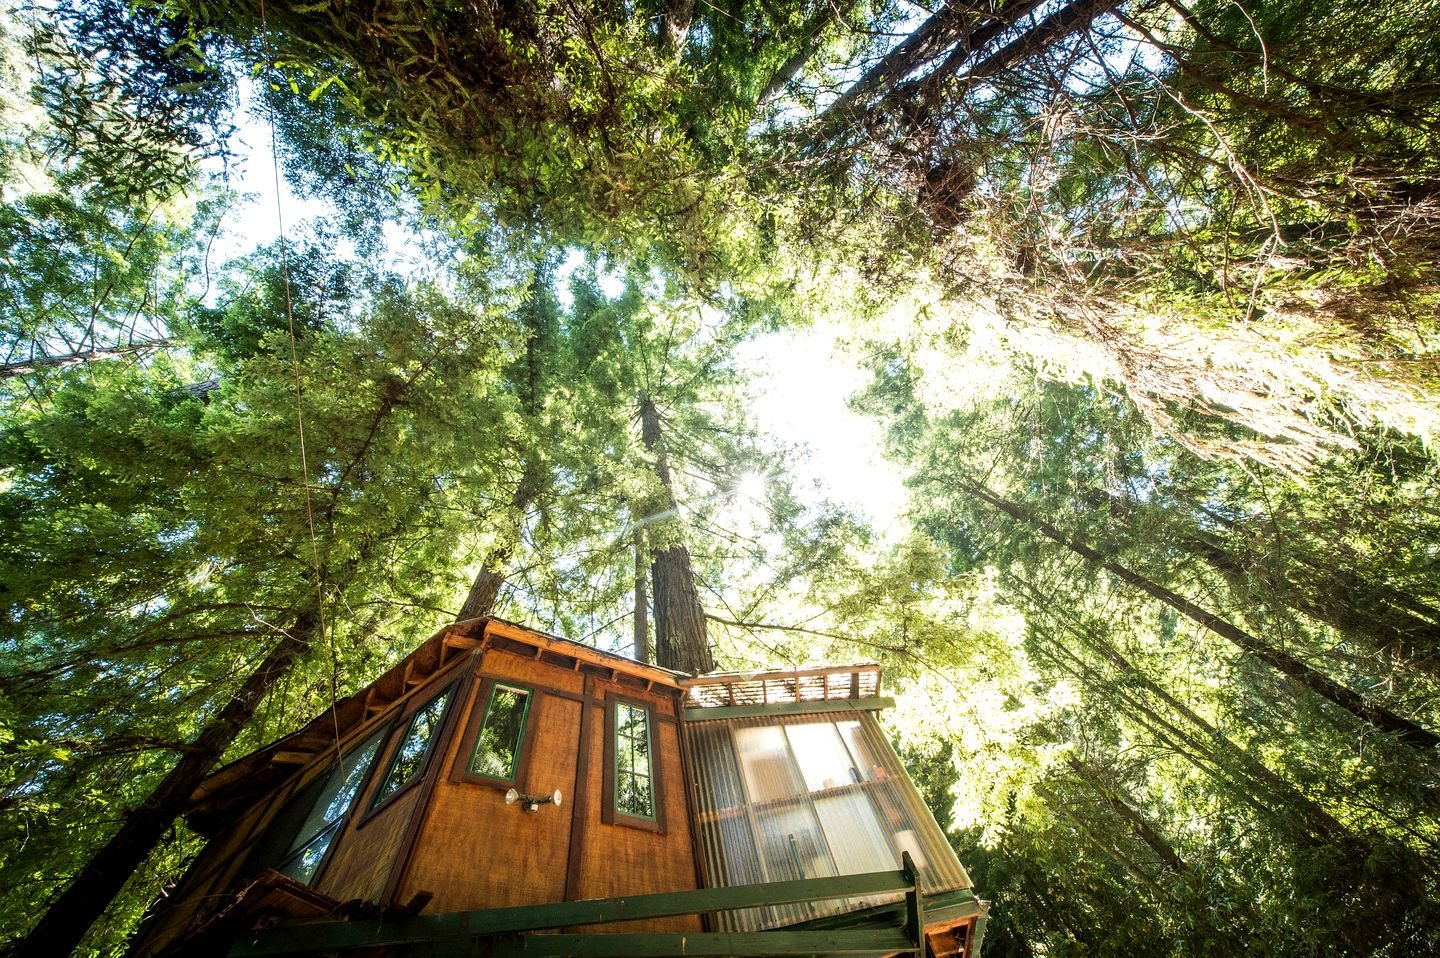 Treehouse hotel: Santa Cruz, California